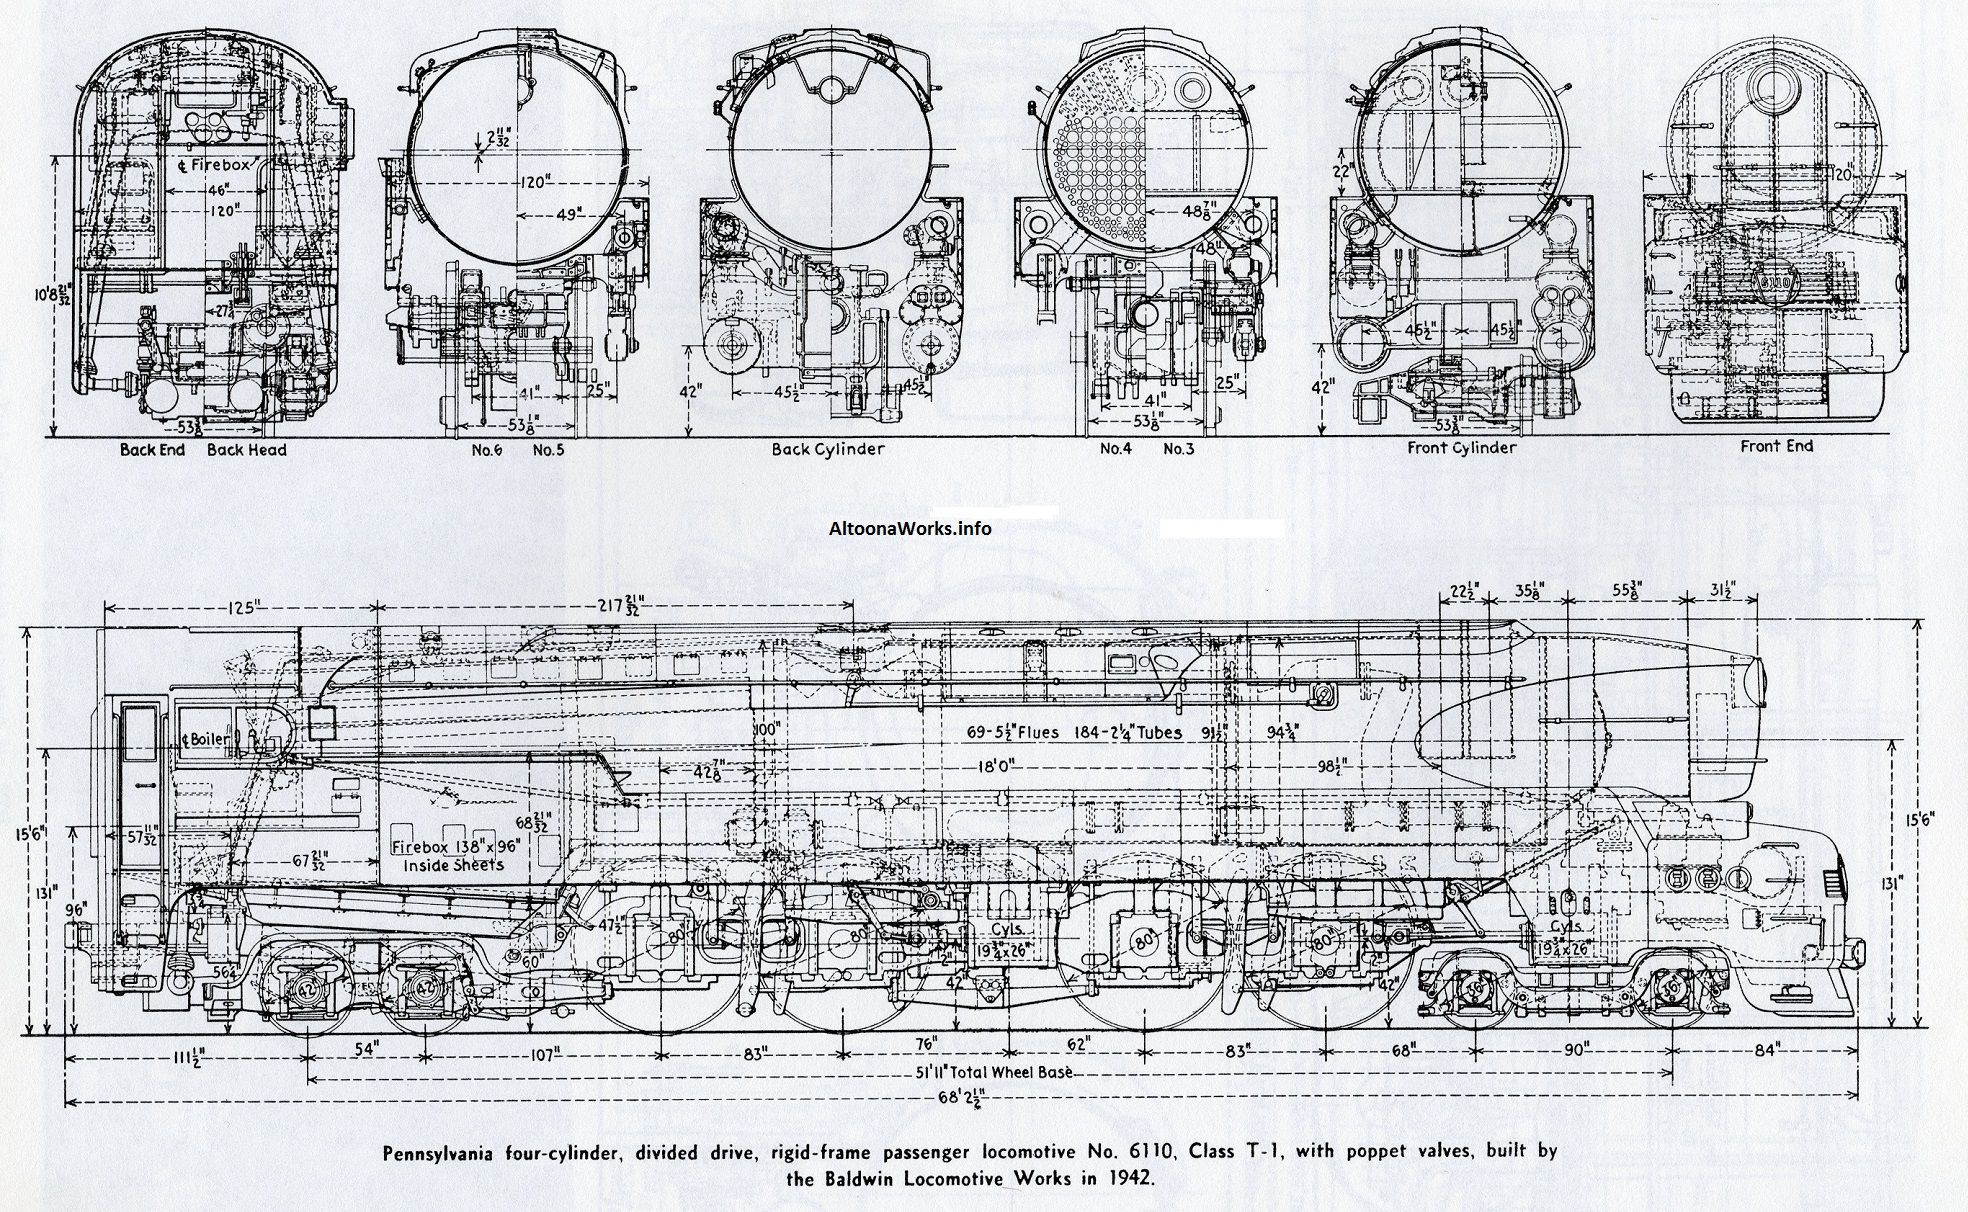 hight resolution of pennsylvania t 1 4 4 4 4 baldwin 1942 locomotive cutaways prr barge diagram